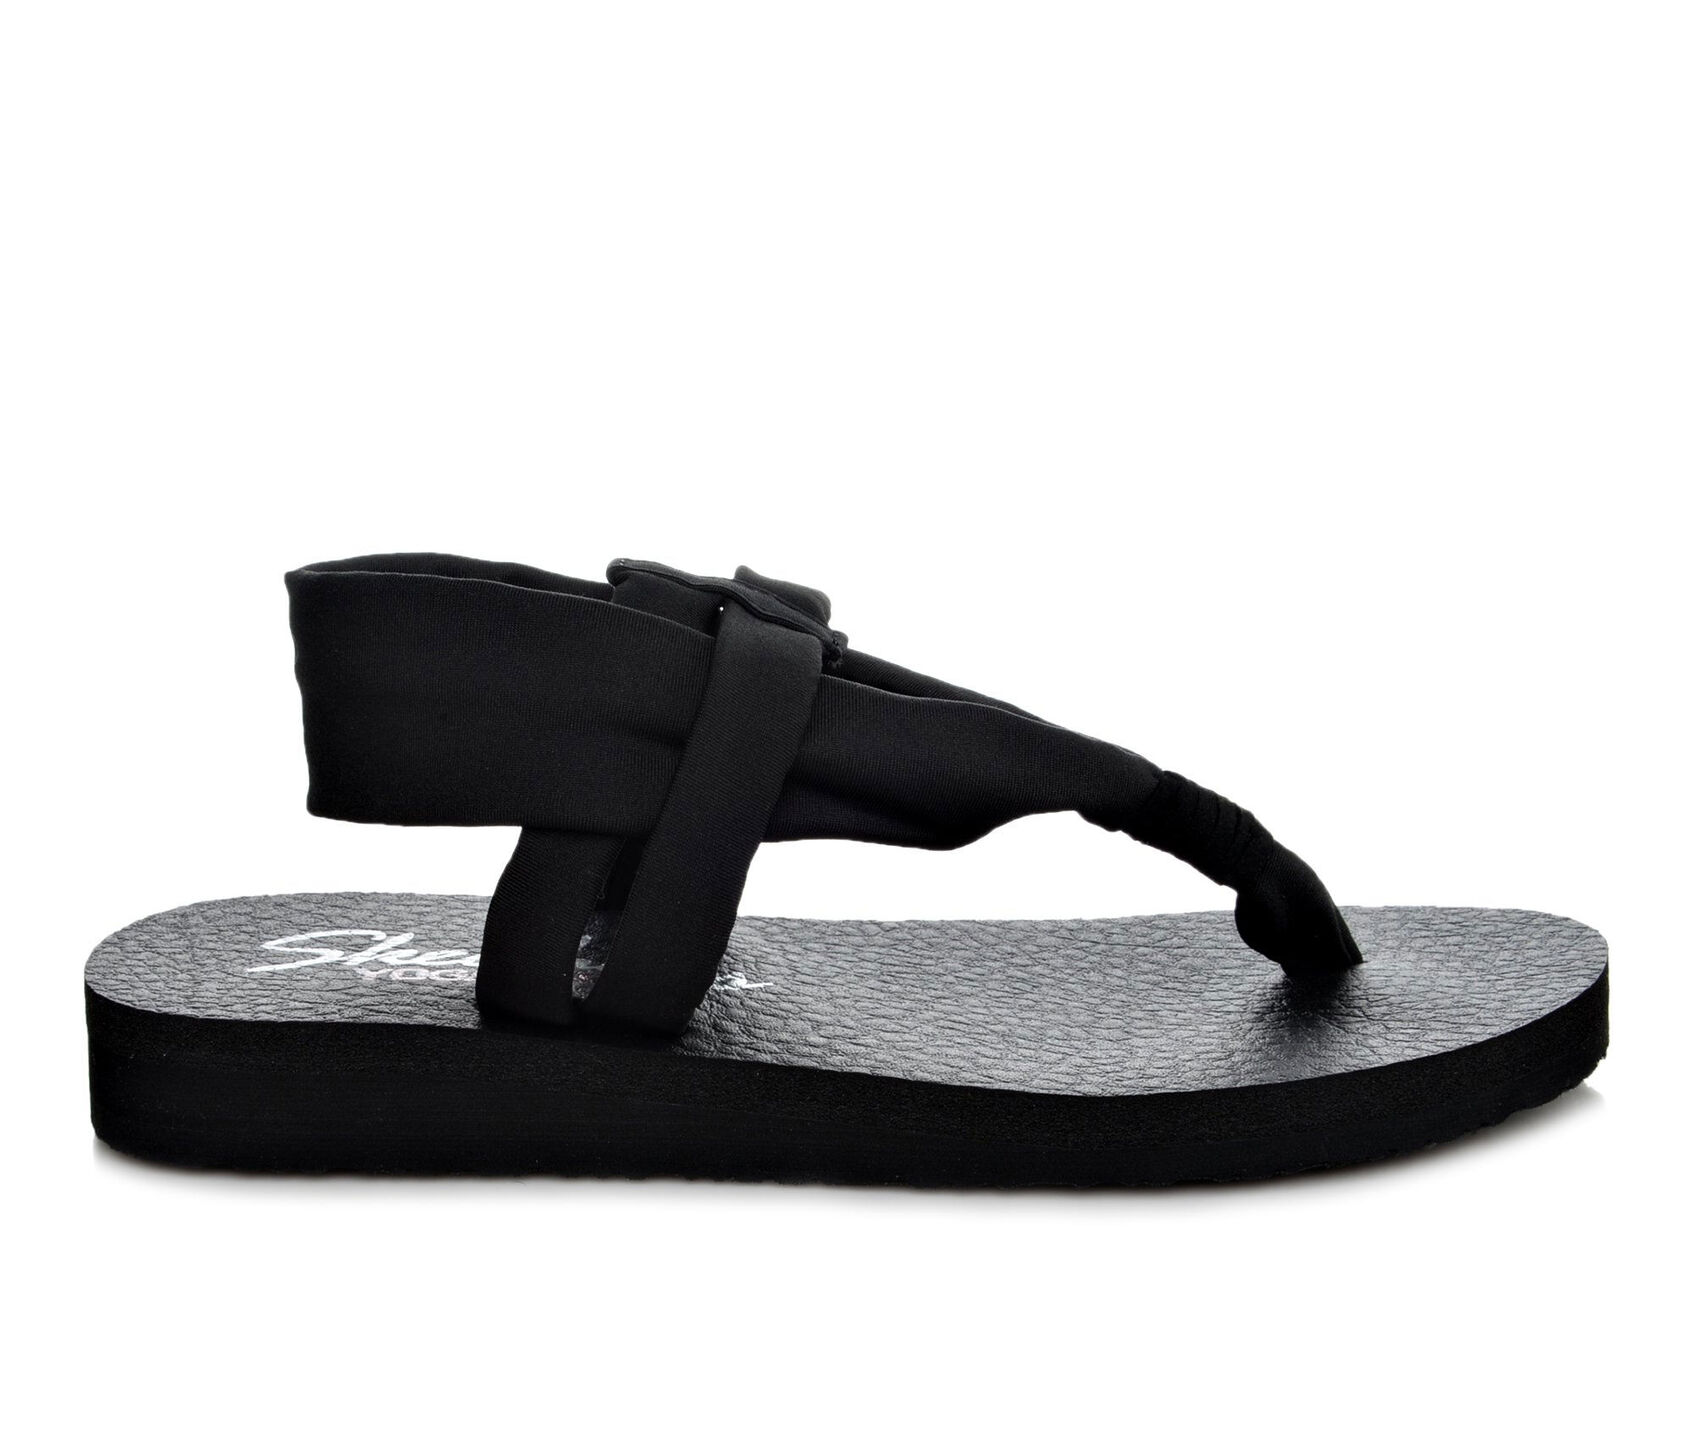 70b7d5de604c ... Skechers Cali Meditation 38615 Sandals. Previous